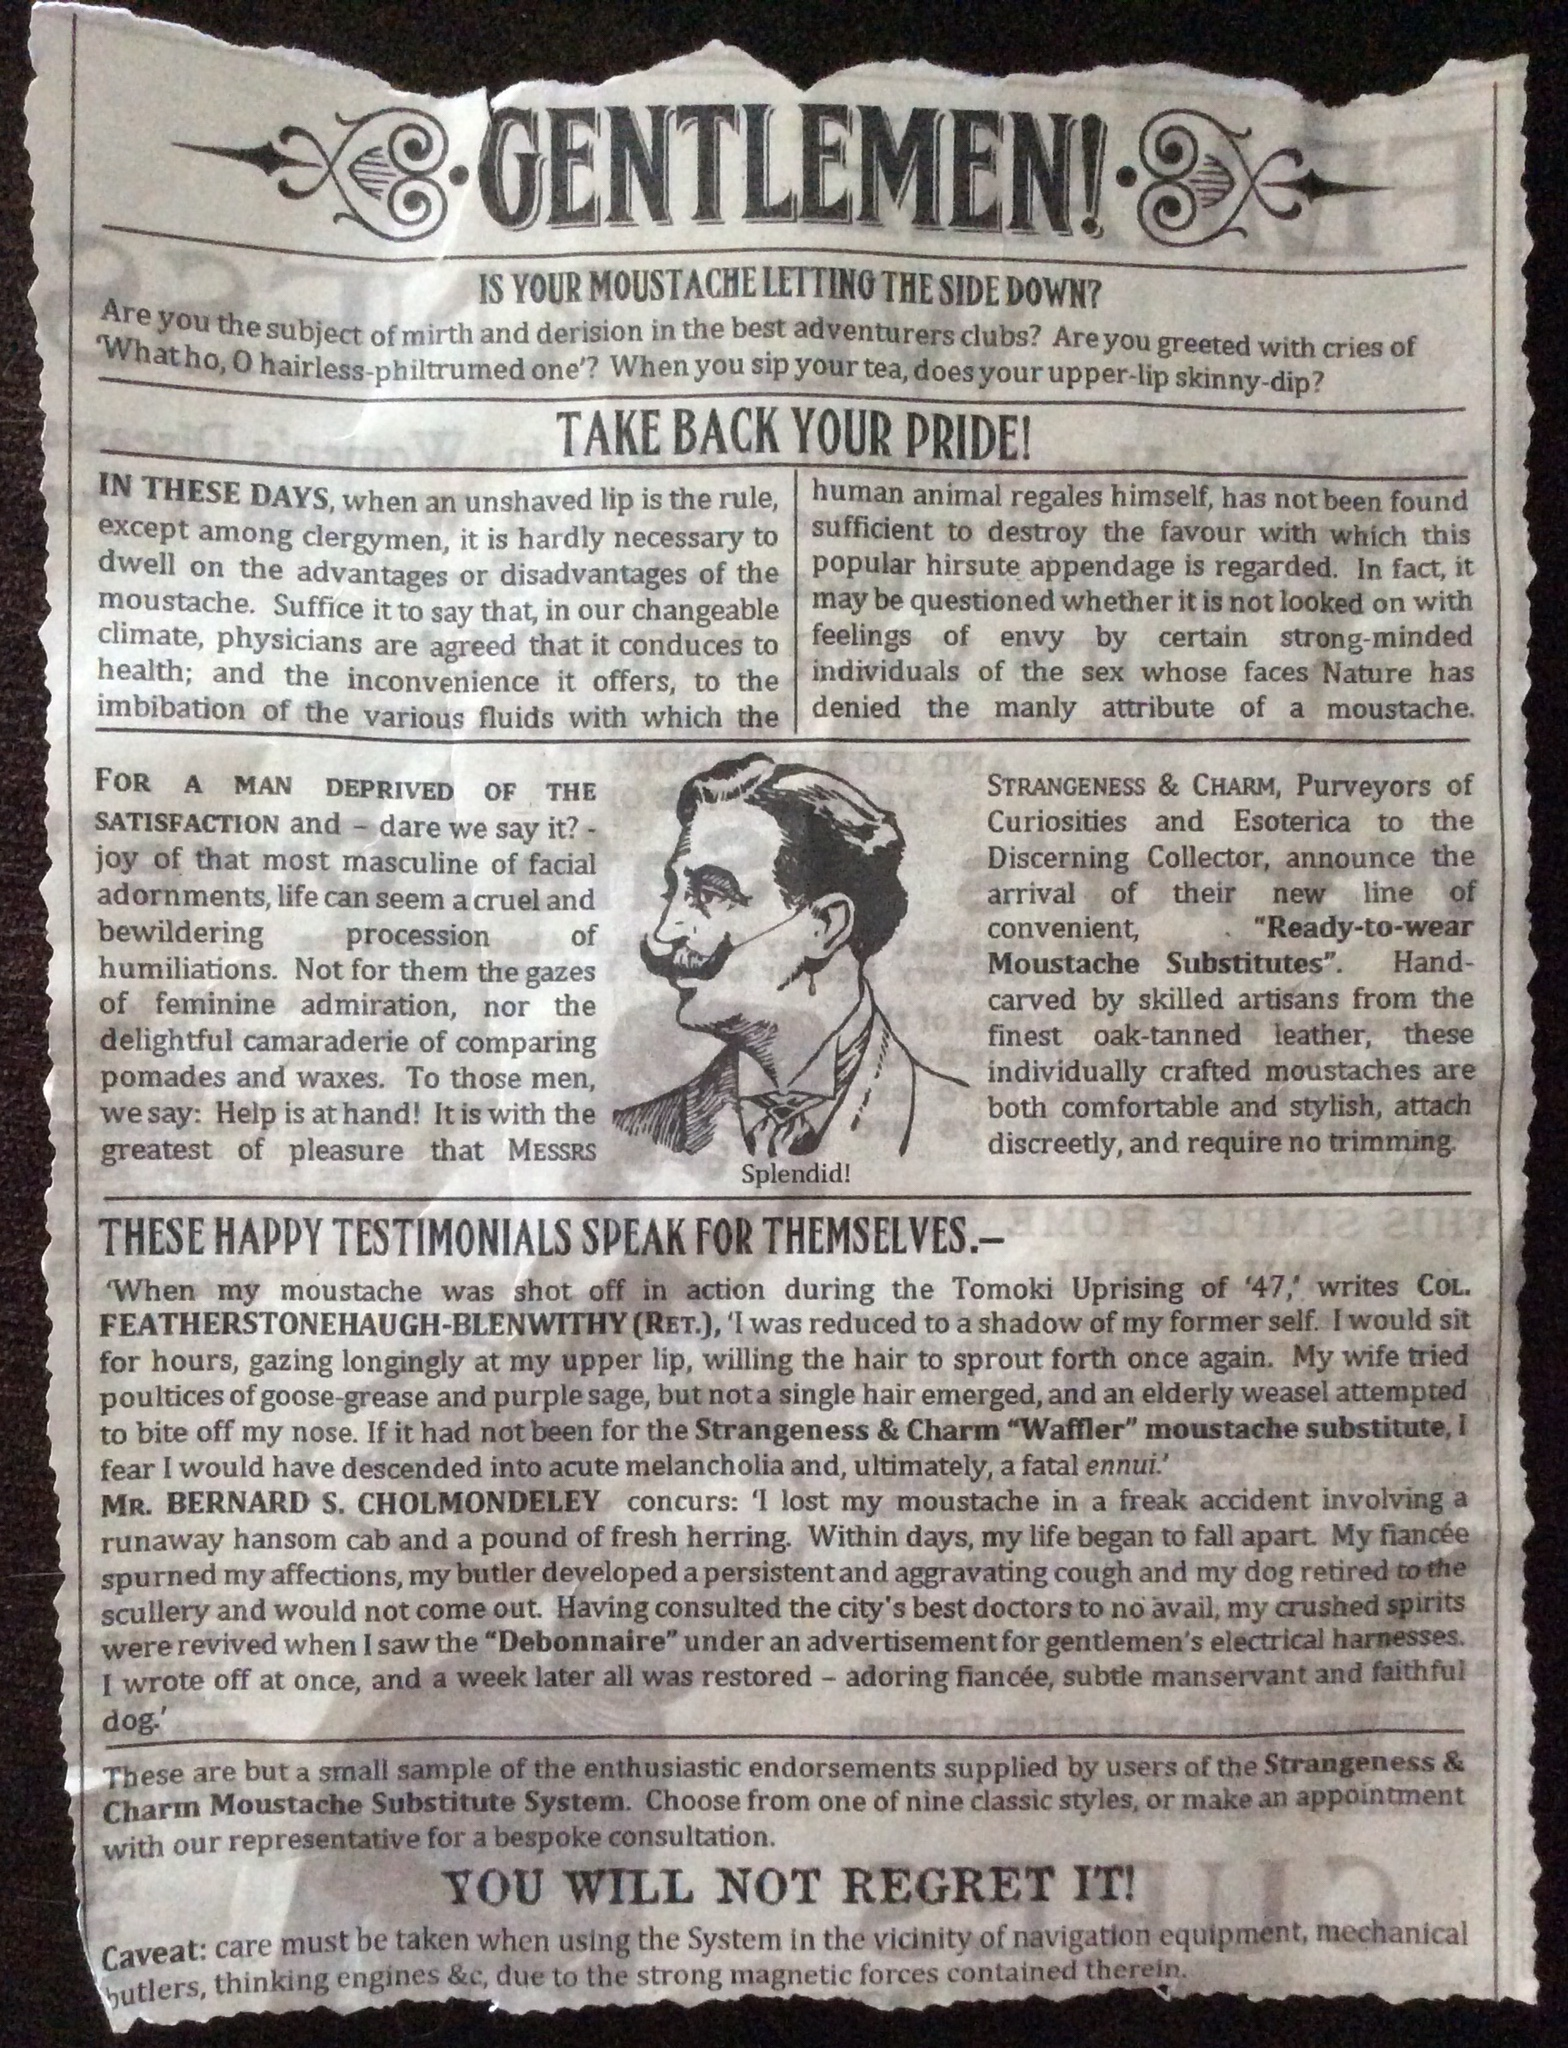 Newspaper clipping of an advert for moustache substitutes